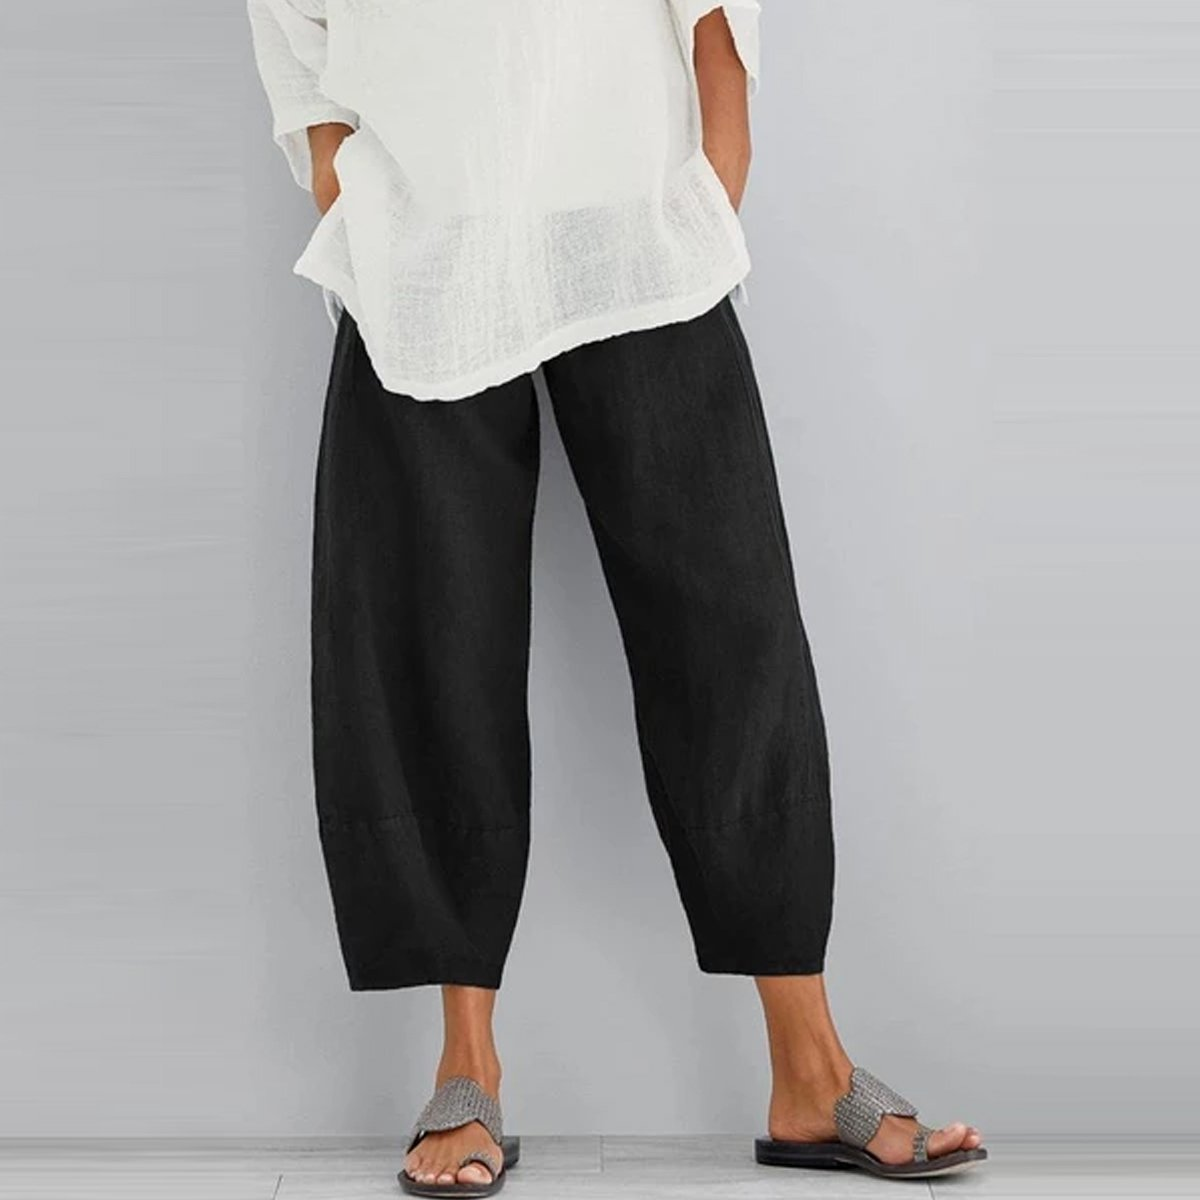 2020 New Arrival Solid Casual Side Pockets Pants